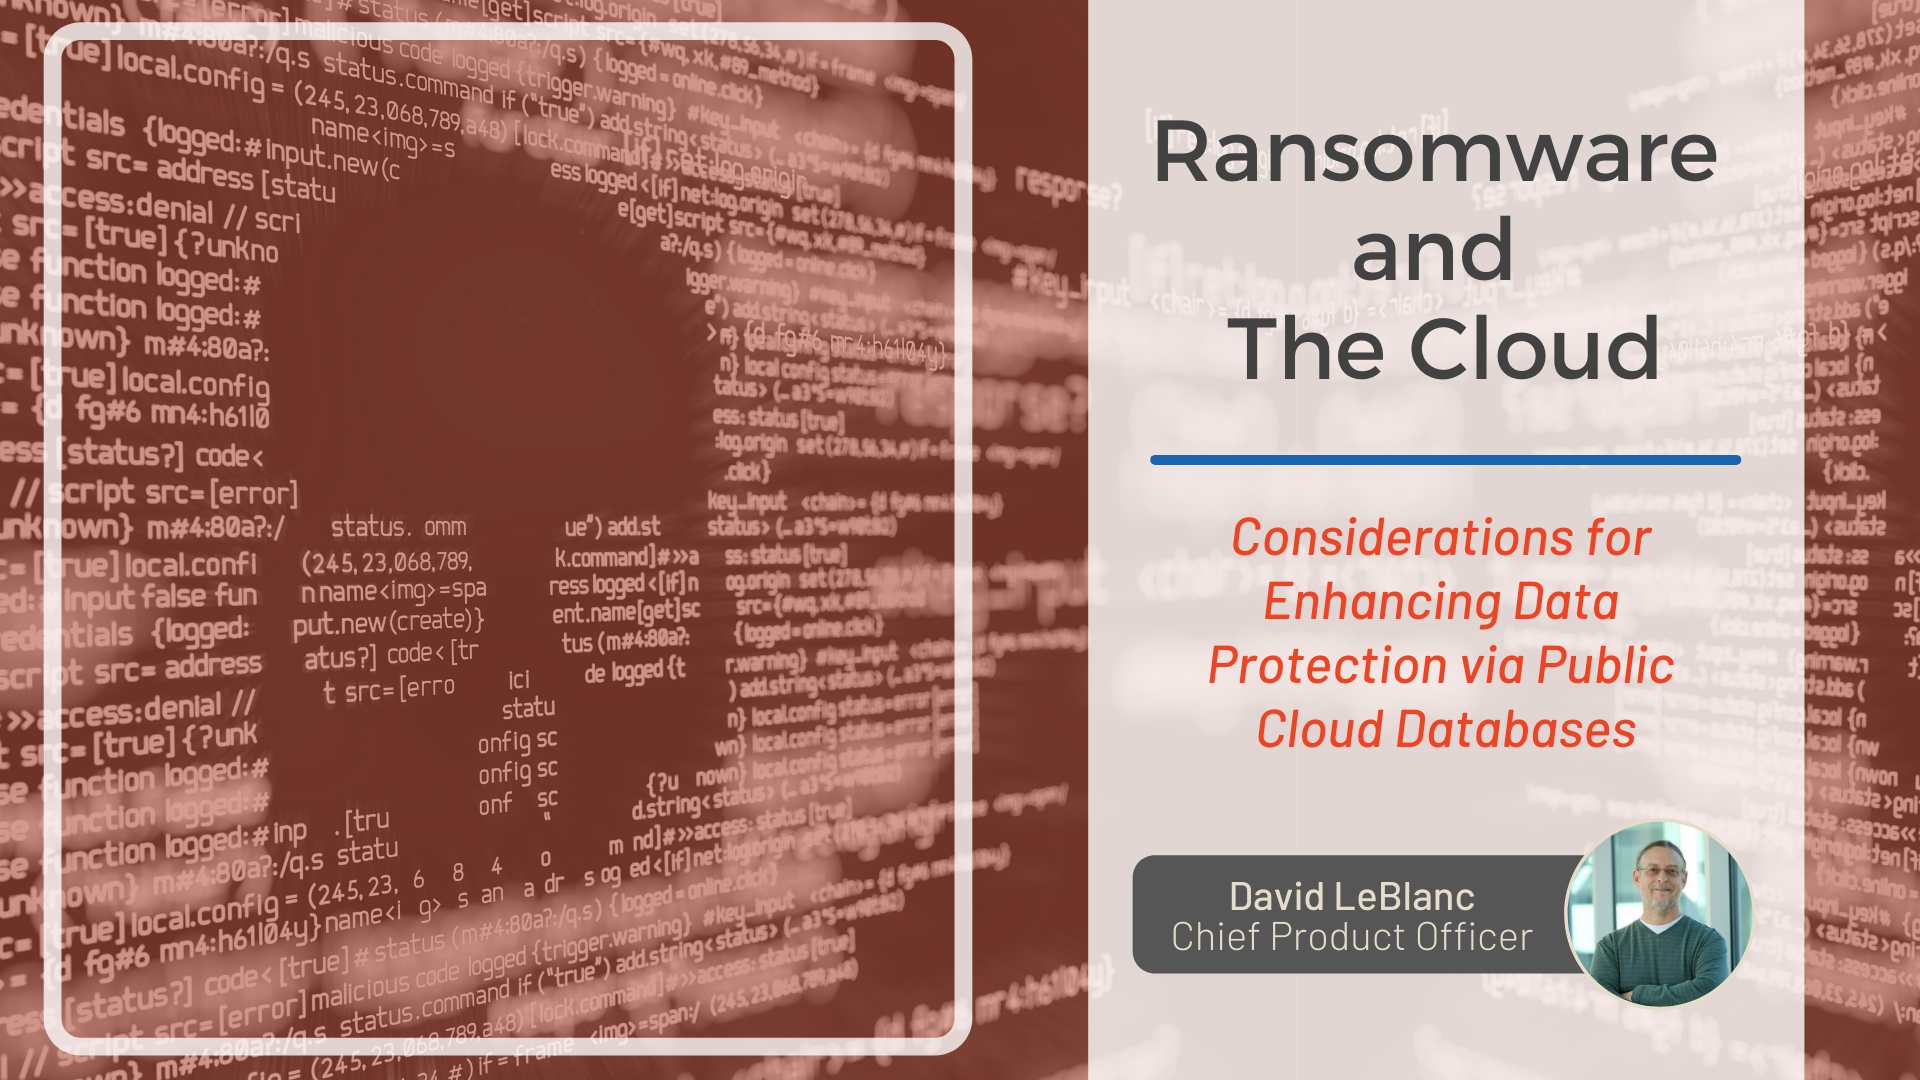 Ransomware and The Cloud